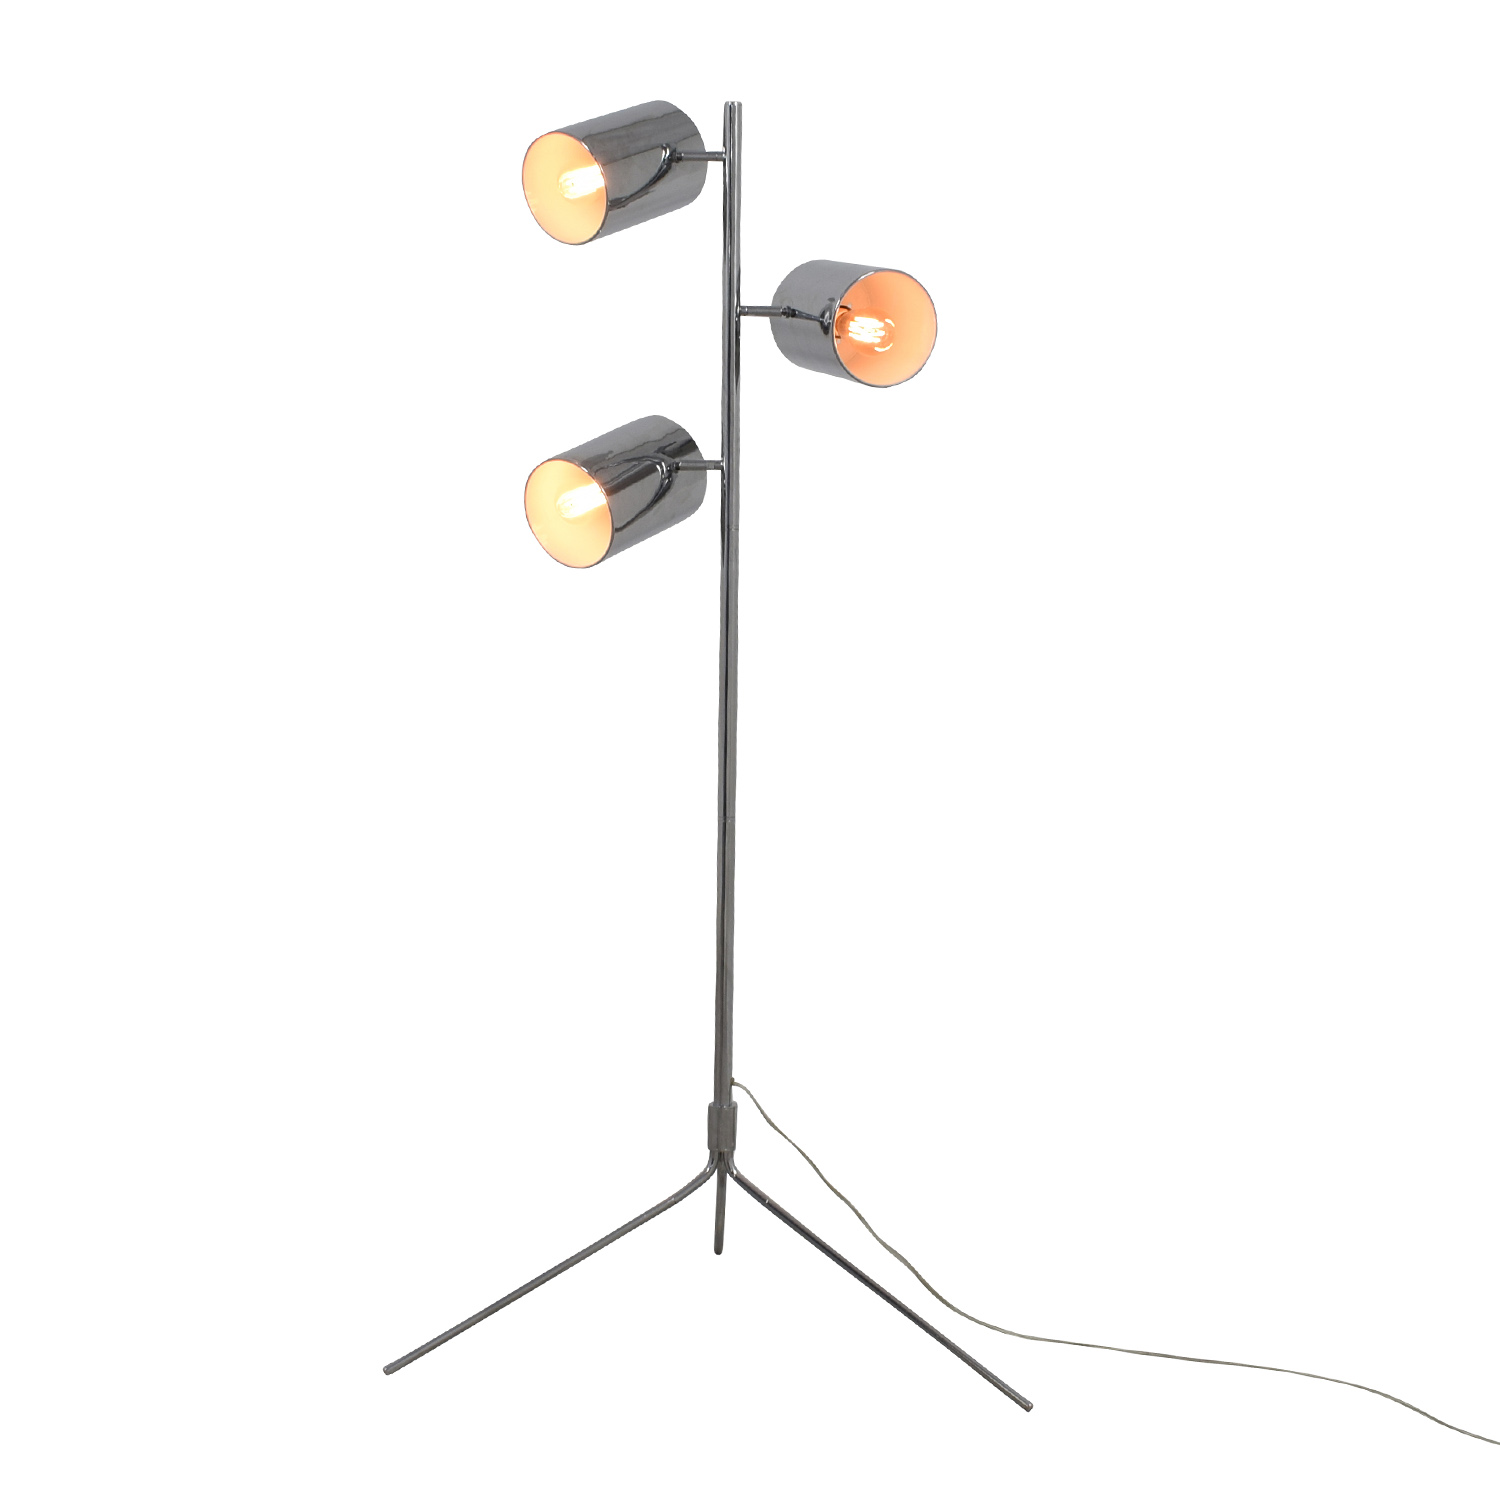 36 Off Cb2 Cb2 Tripel Floor Lamp Decor